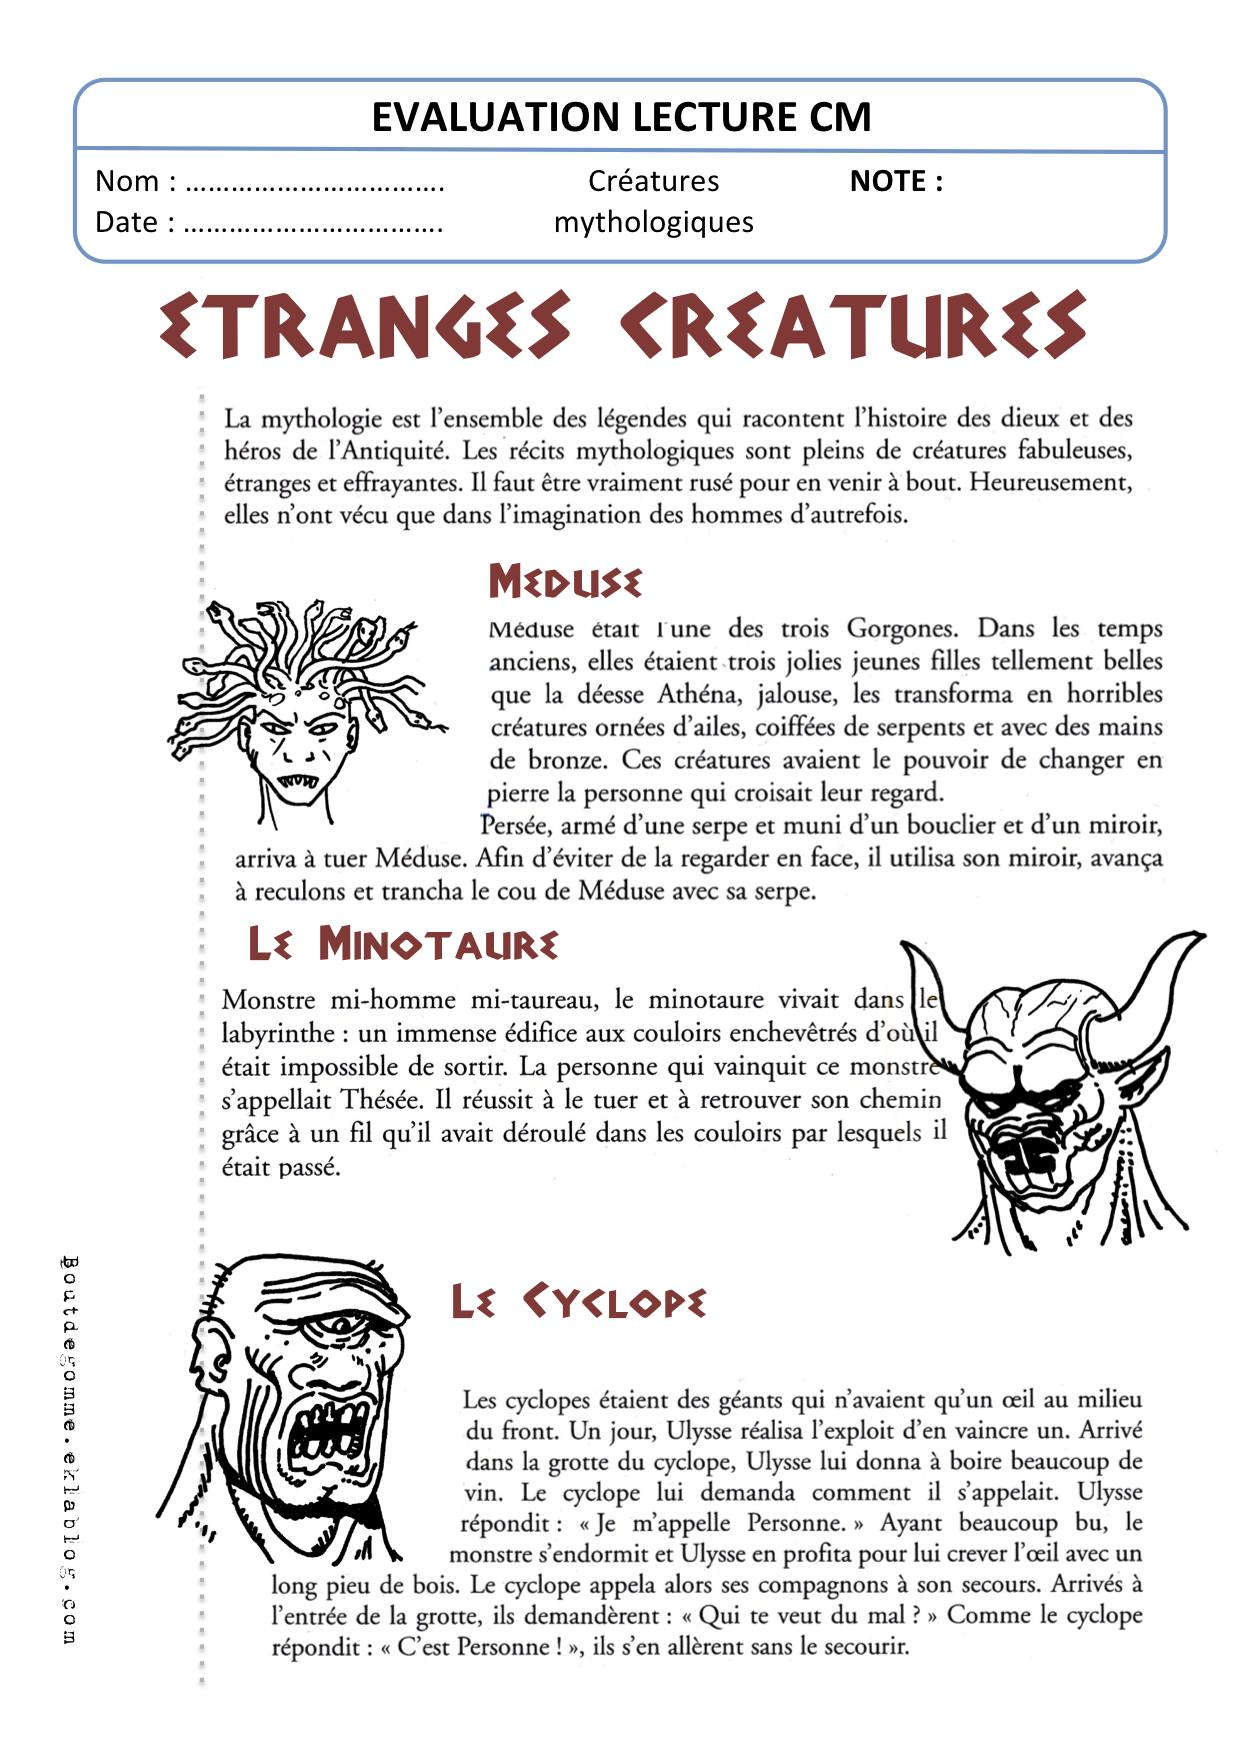 Evaluation Sur Le Monstre 6eme : evaluation, monstre, Evaluation, Lecture, (Créatures, Mythologiques), Gomme